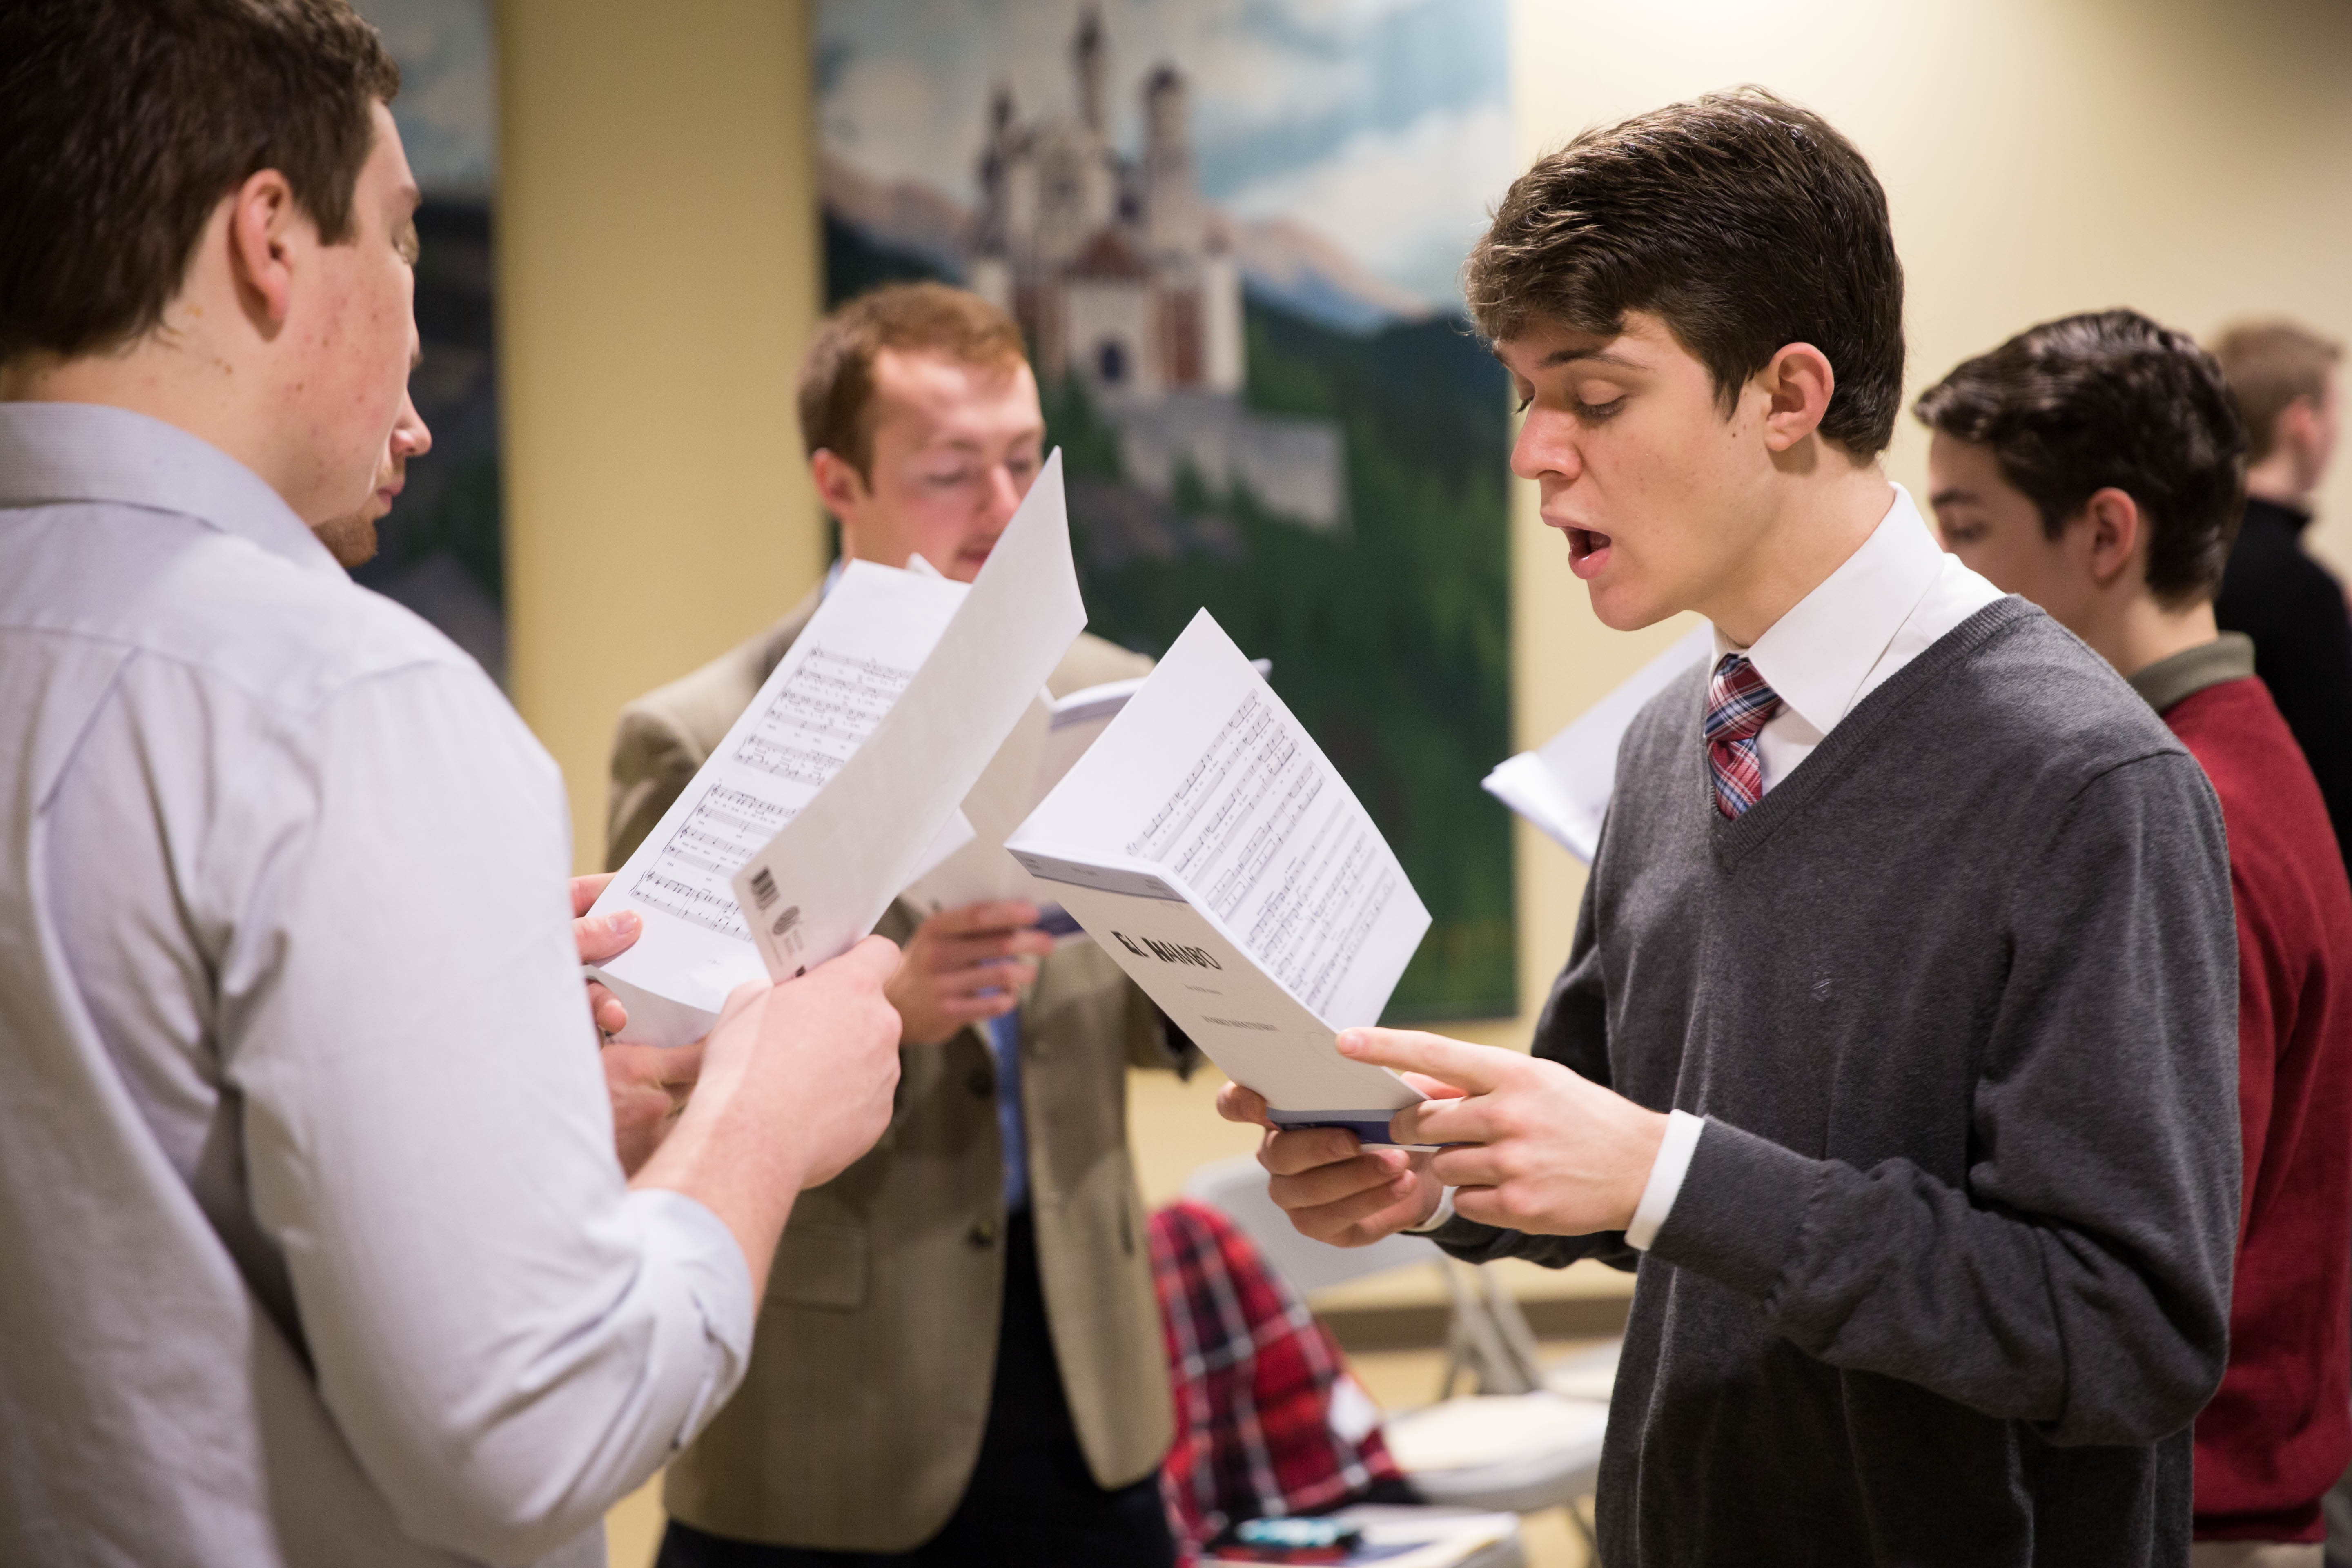 Patrick Henry College (PHC) chorale practice